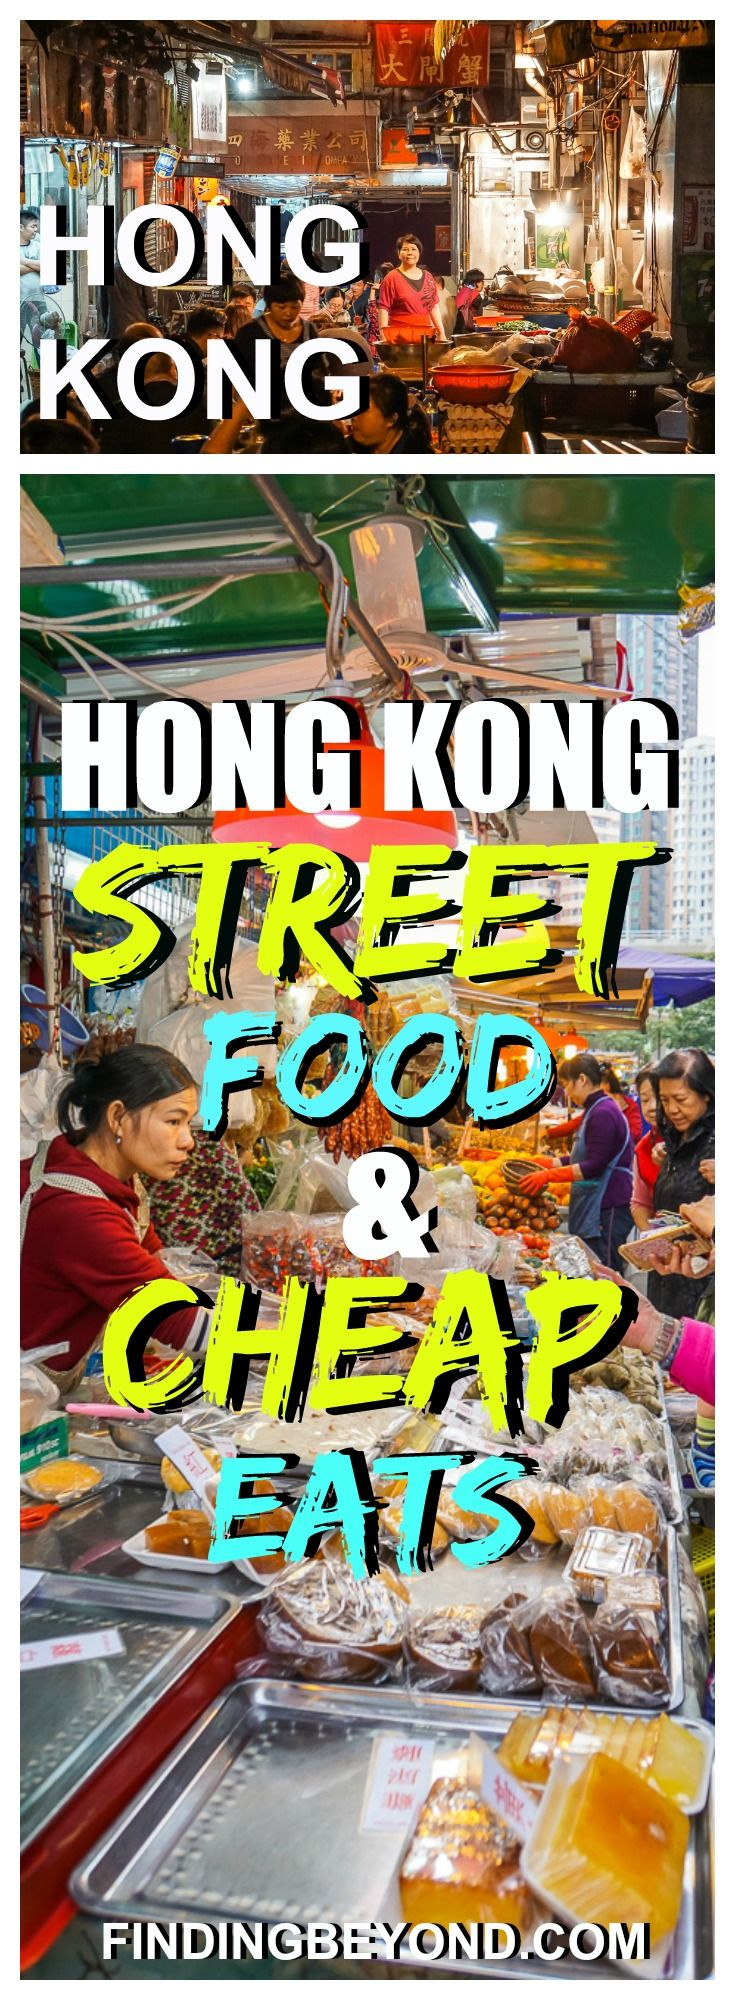 If you're looking to keep your Hong Kong eating costs to a minimum, check out this post for Hong Kong street food and alternative Hong Kong cheap eats. | Eating cheap in Hong Kong | Hong Kong on a Budget | Best food in Hong Kong | Where to eat in Hong Kong | Hong Kong Street Food | Hong Kong Cheap Eats | Backpacking in Hong Kong | What to eat in Hong Kong |